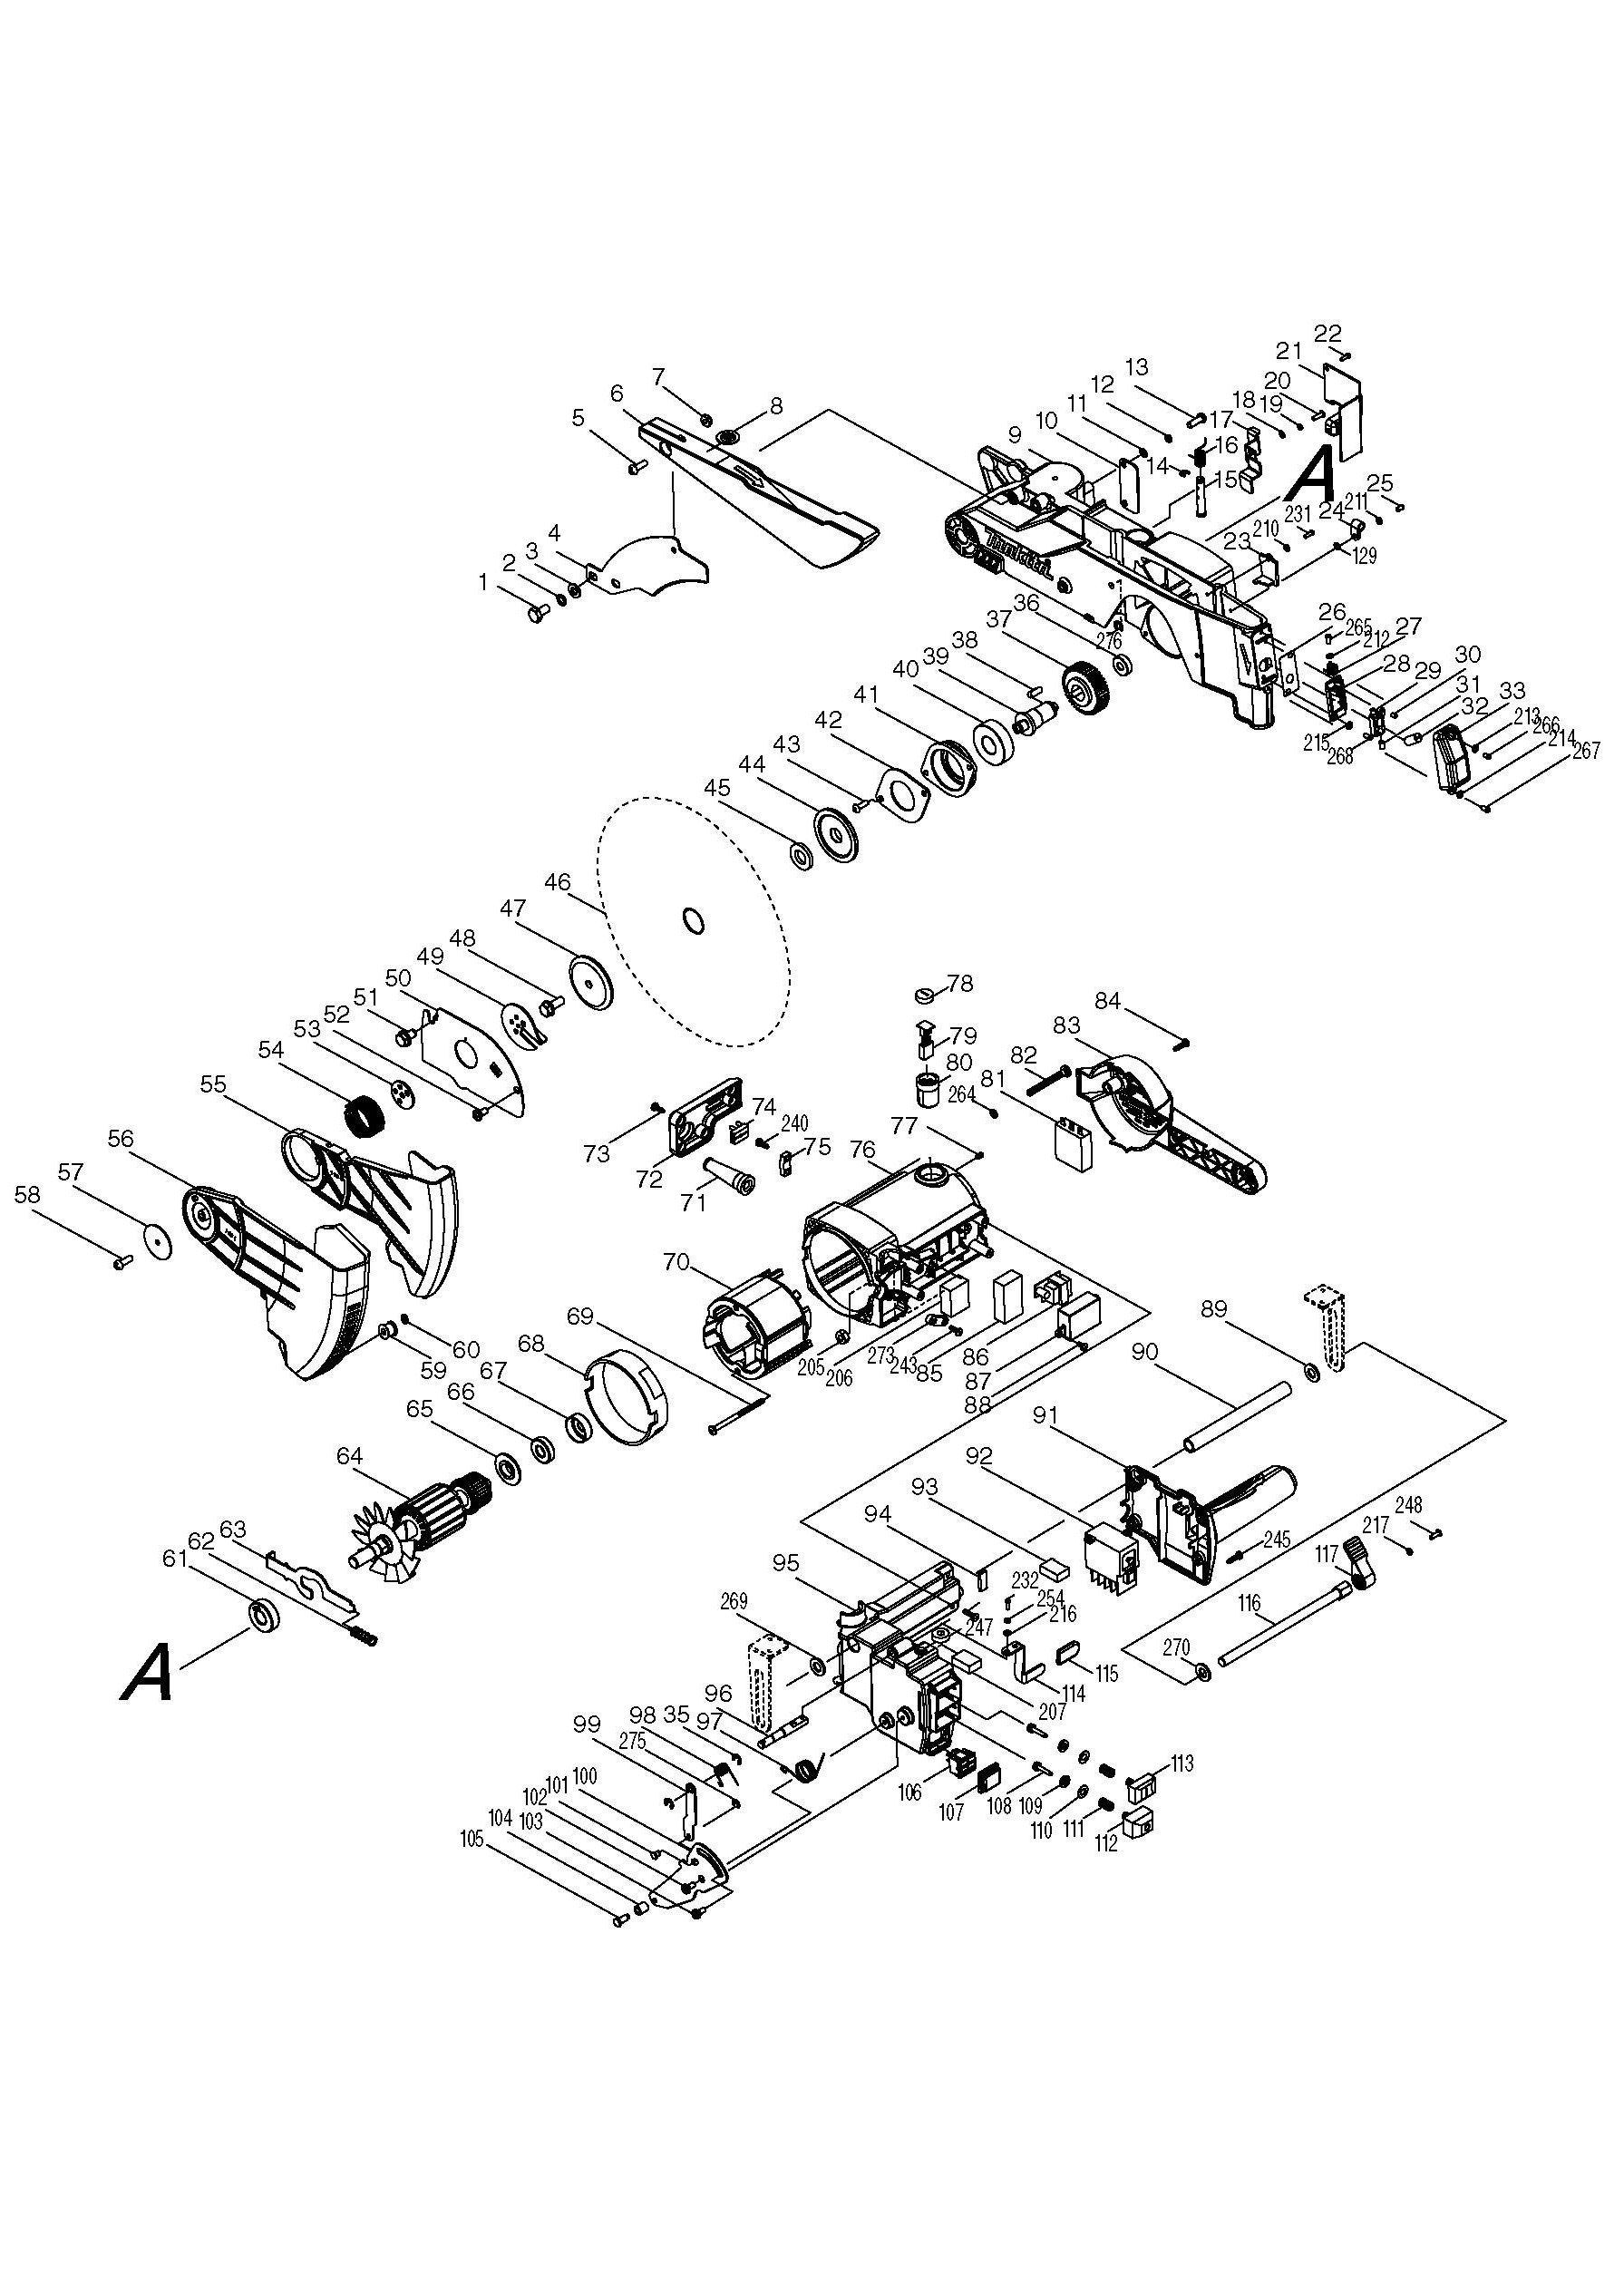 LH1200FL_WW_01 spares for makita lh1200fl spare_lh1200fl from power tool centre makita mlt100 wiring diagram at readyjetset.co